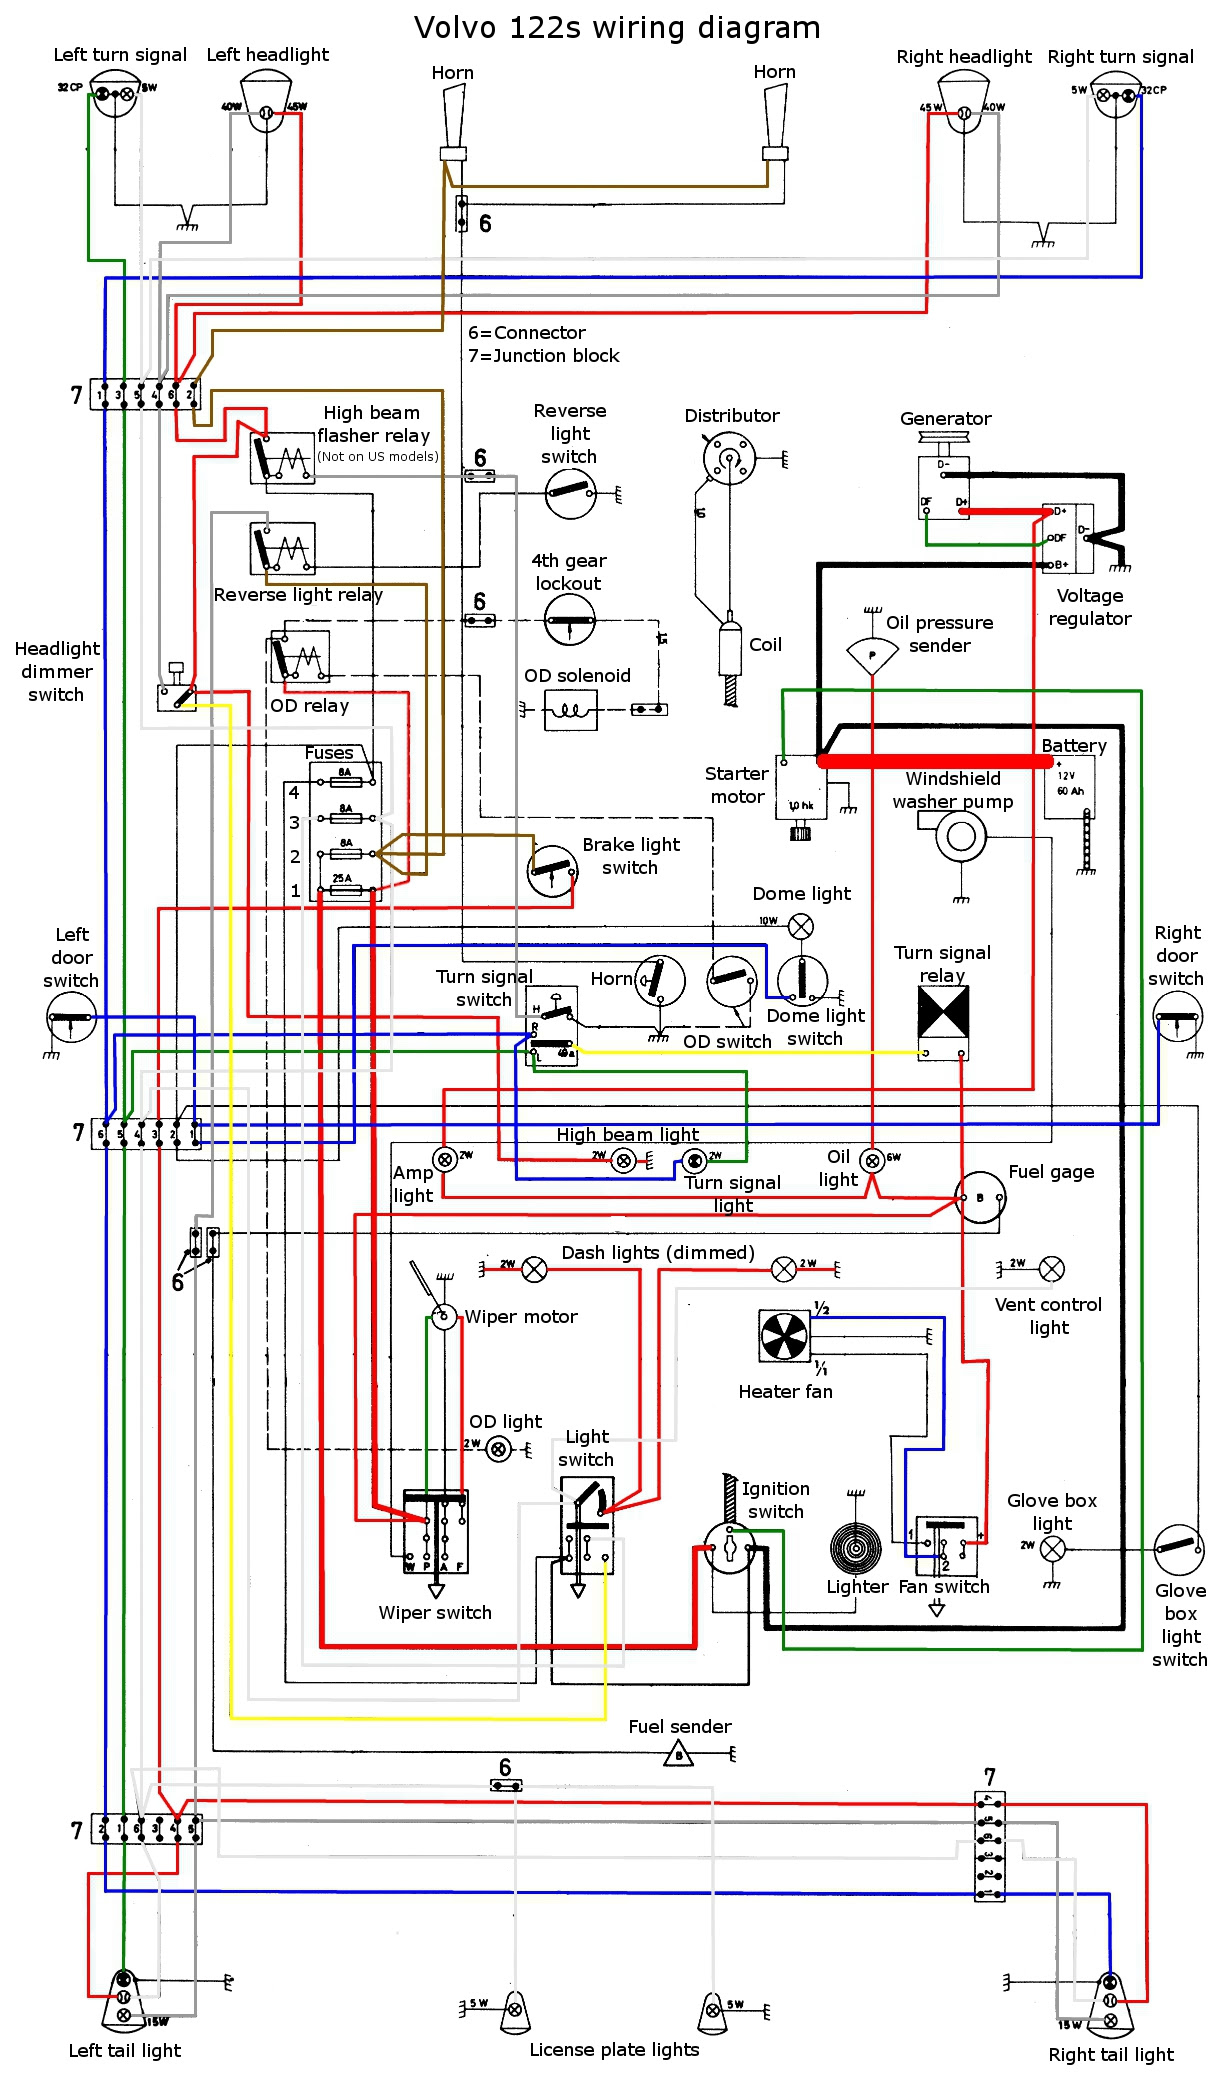 Wiring And Fuse Image - All Free Accessed Wiring Databse | Volvo T5 Wiring Diagram |  | javaclassdiagram.viaggicugini.it